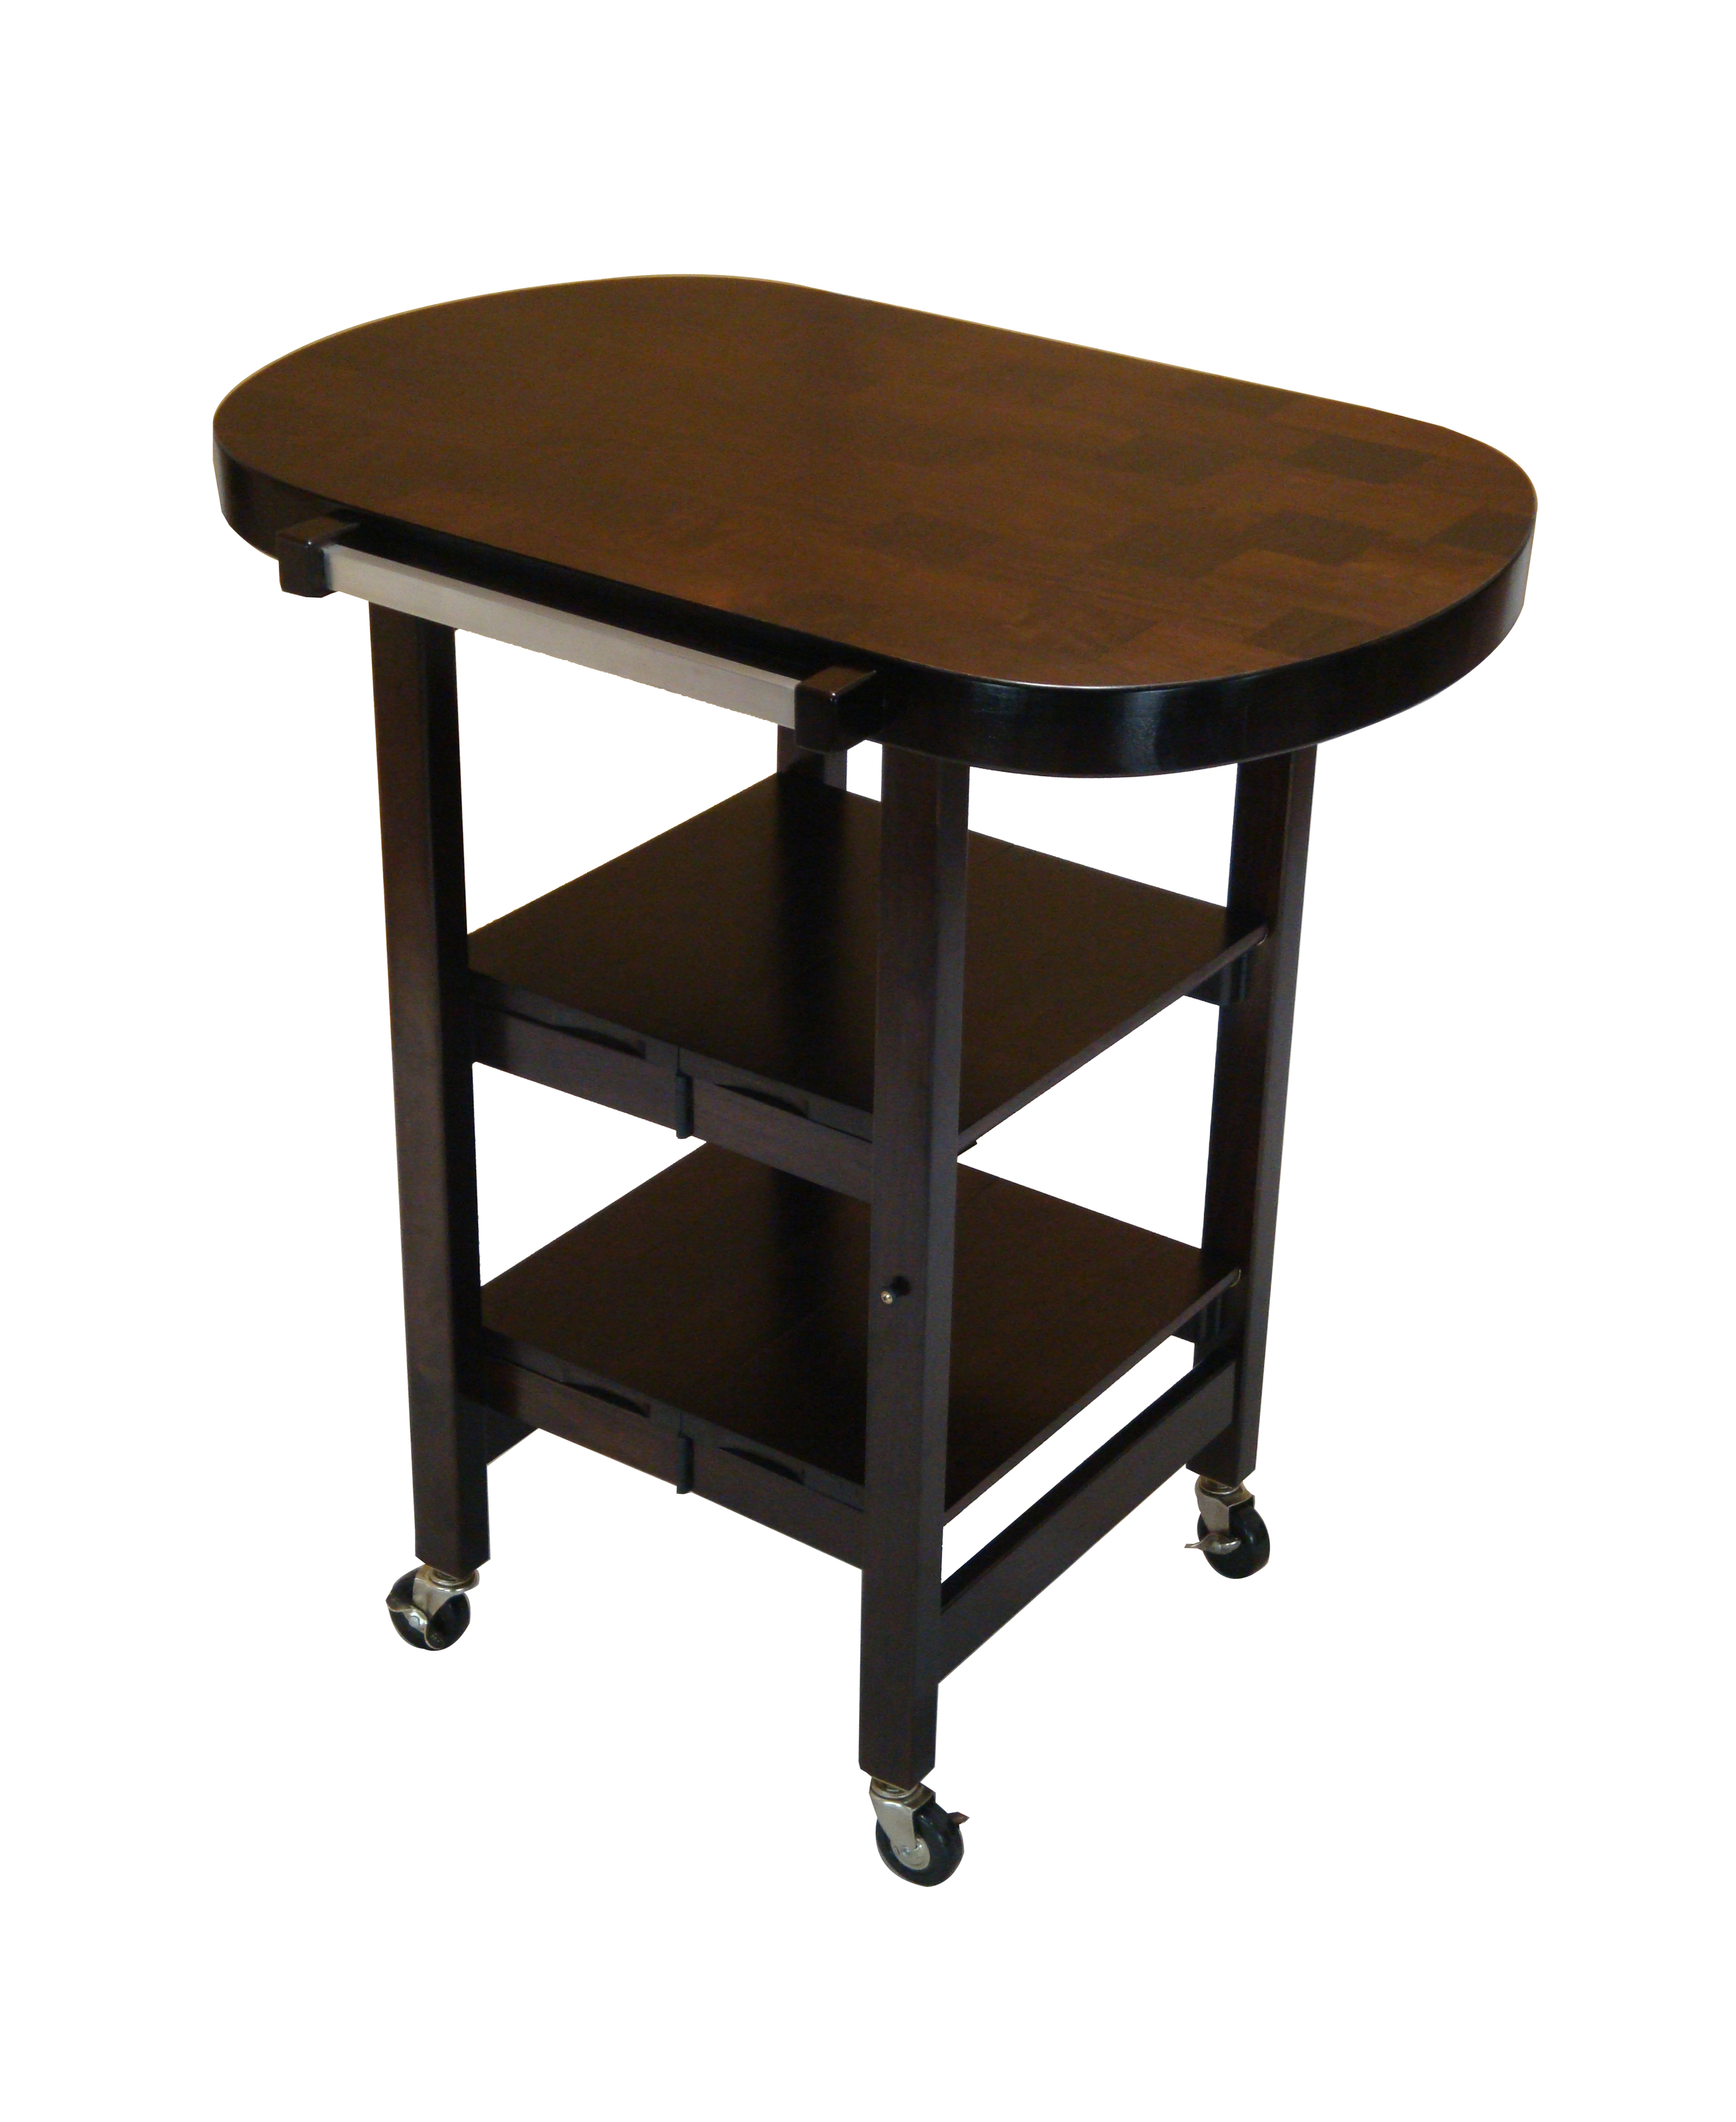 foldable kitchen islands submited images origami folding kitchen island cart black kitchen